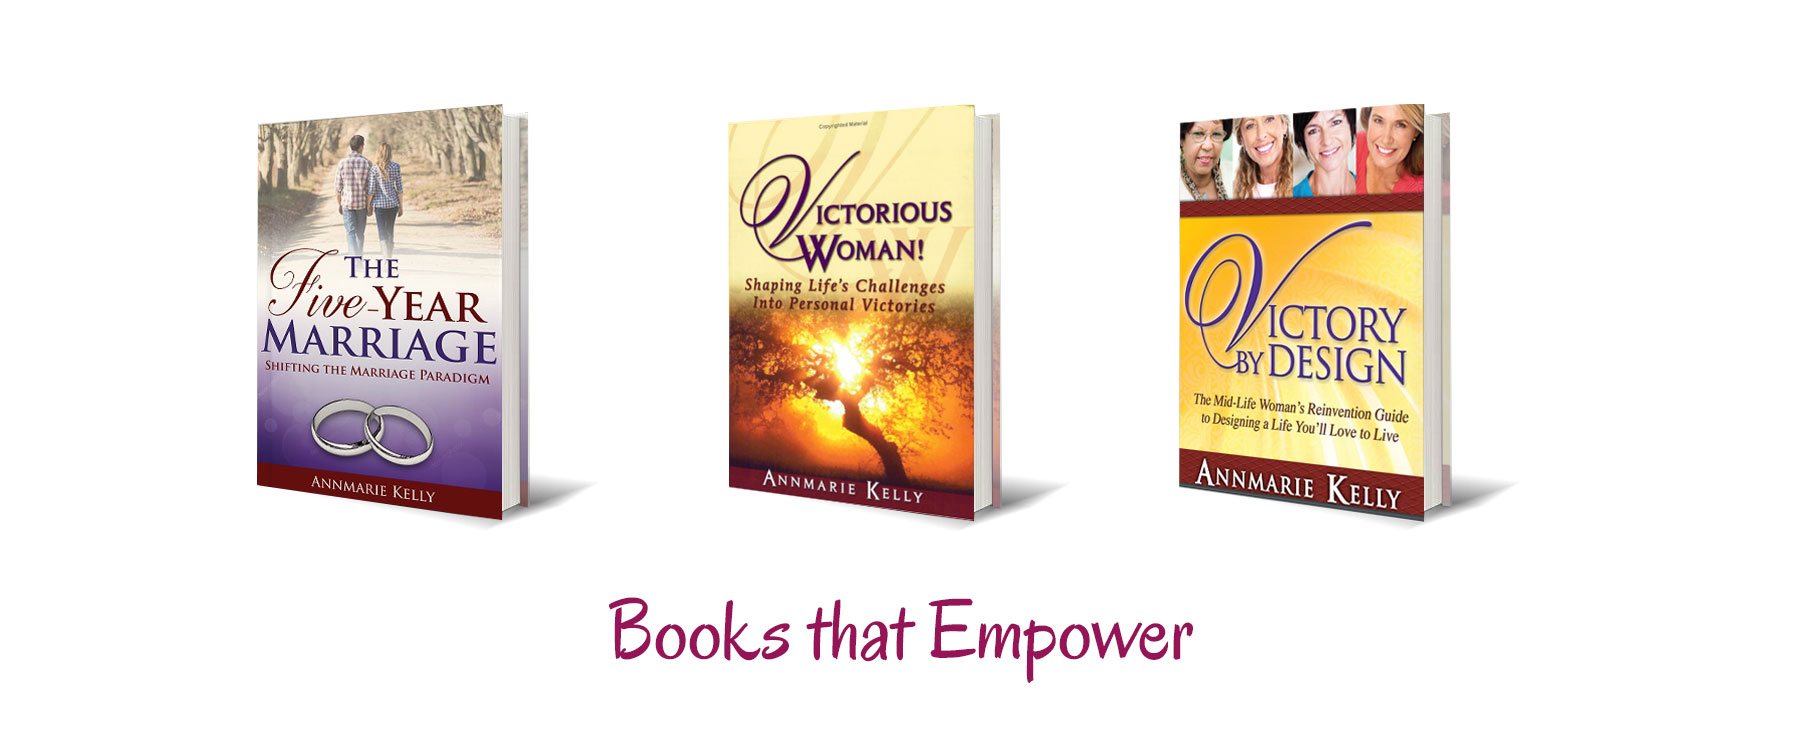 The Five Year Marriage Book by Annmarie Kelly